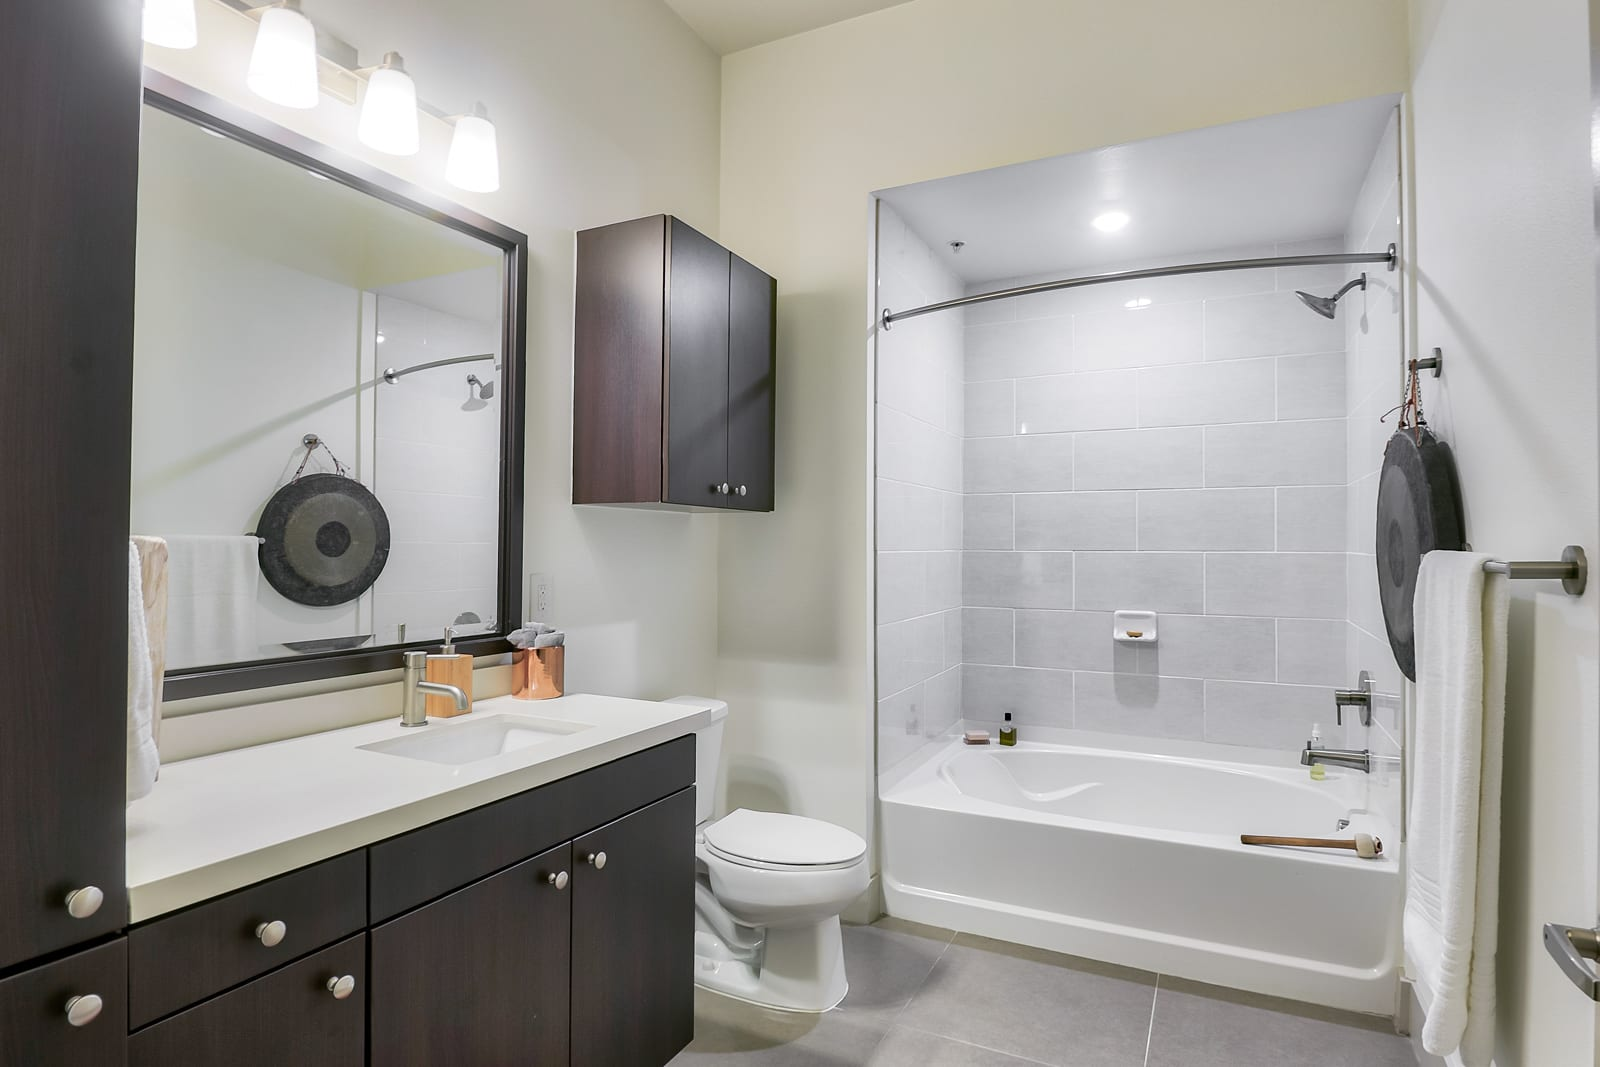 Spacious Bathrooms with Granite Countertops at 1000 Grand by Windsor, 90015, CA